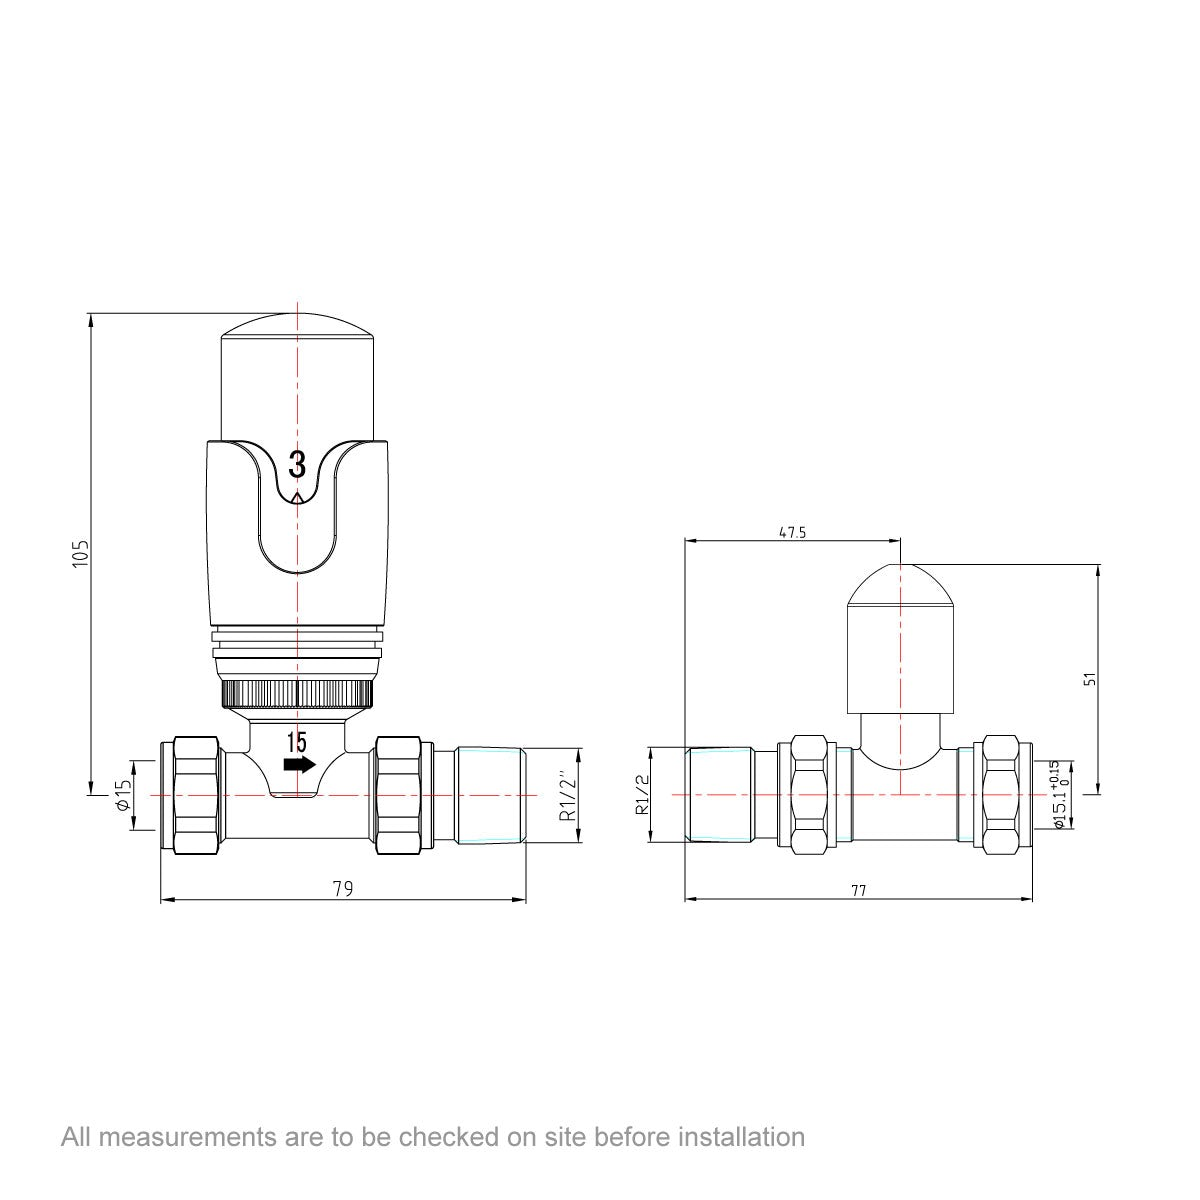 Dimensions for Orchard Thermostatic chrome straight radiator valves